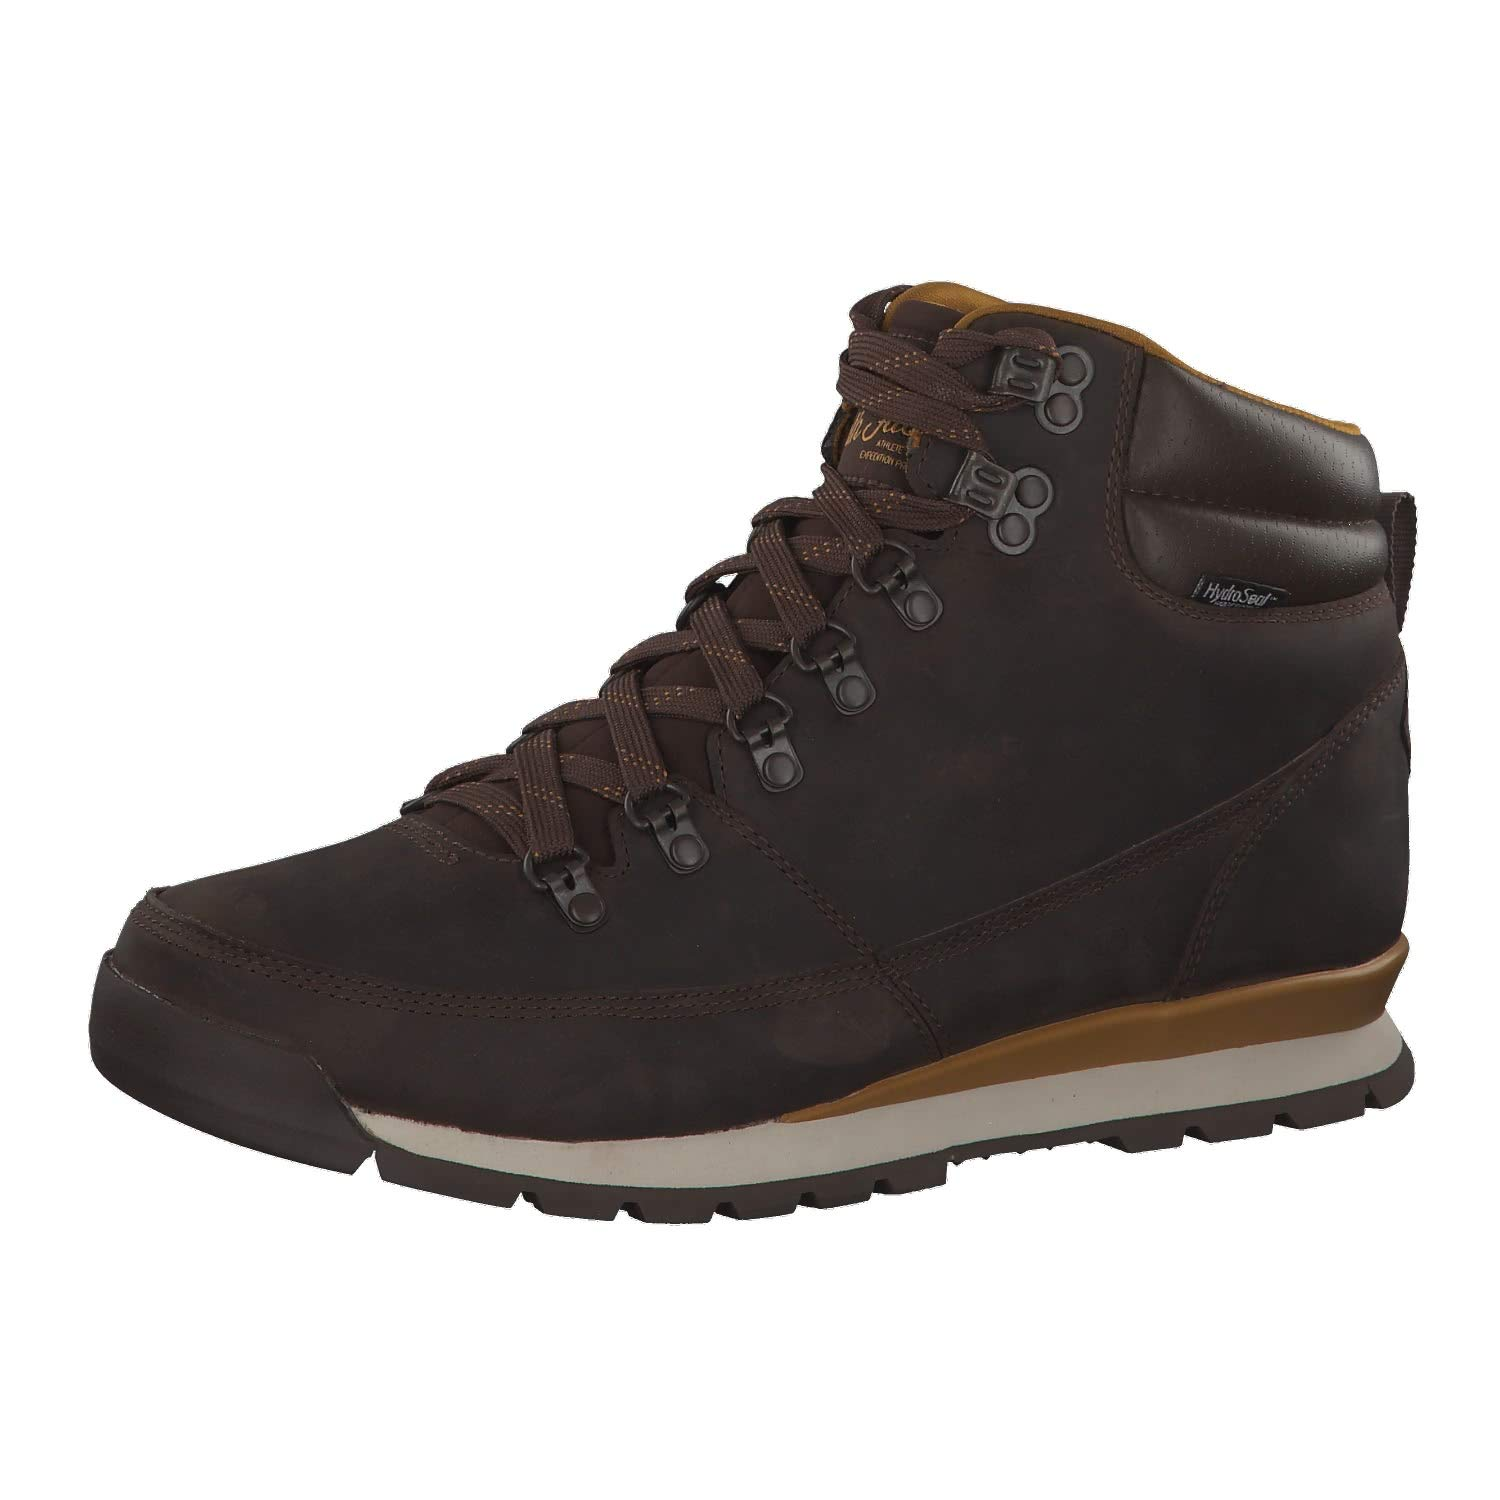 The North Face Back-to-Berkeley Redux Leather, Stivali da Escursionismo Alti Uomo T0CDL0KX8